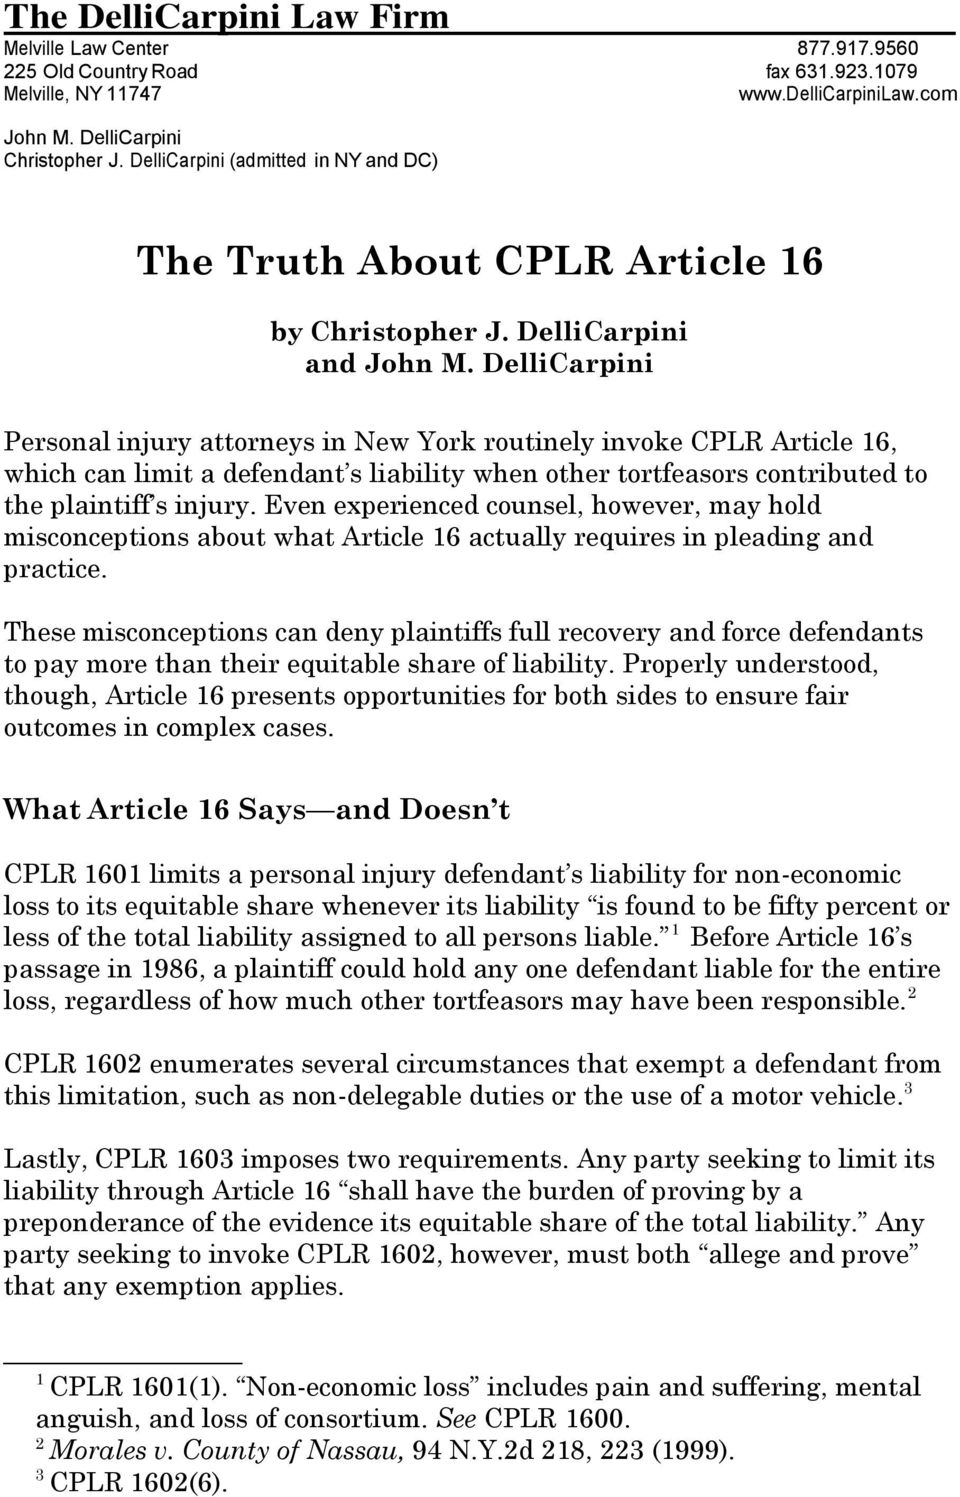 DelliCarpini Personal injury attorneys in New York routinely invoke CPLR Article 16, which can limit a defendant s liability when other tortfeasors contributed to the plaintiff s injury.